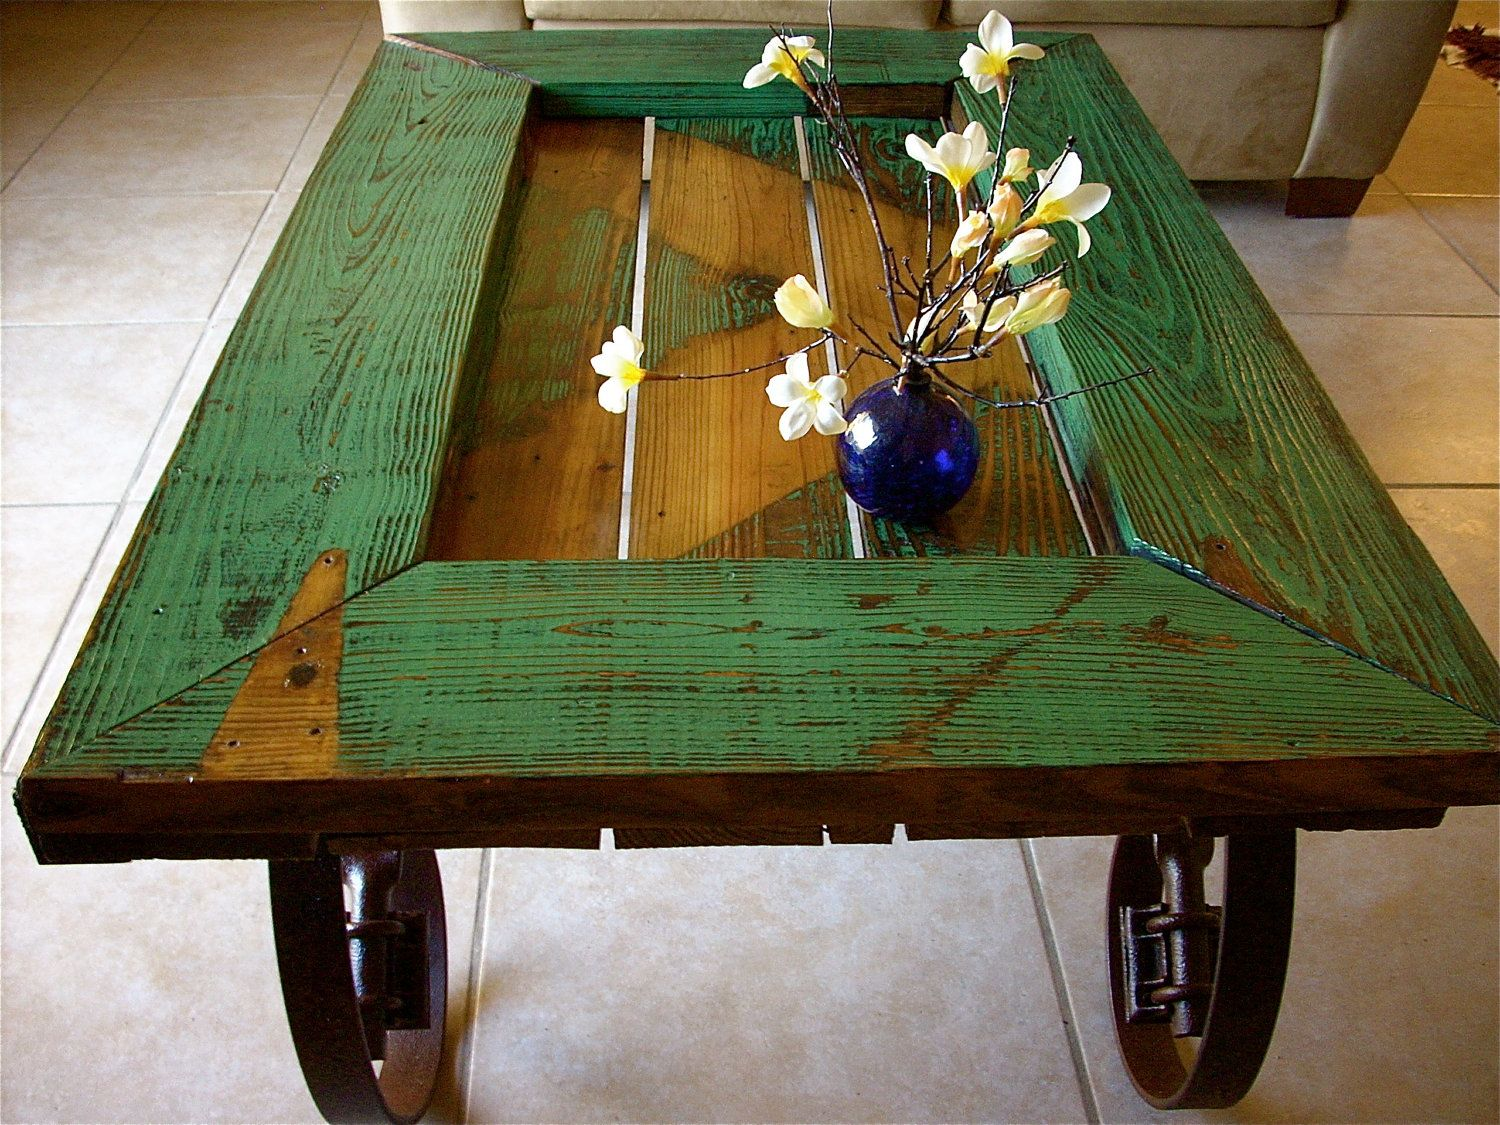 Barn Door Coffee Table & Barn Door Coffee Table | Door coffee tables Barn doors and Repurpose